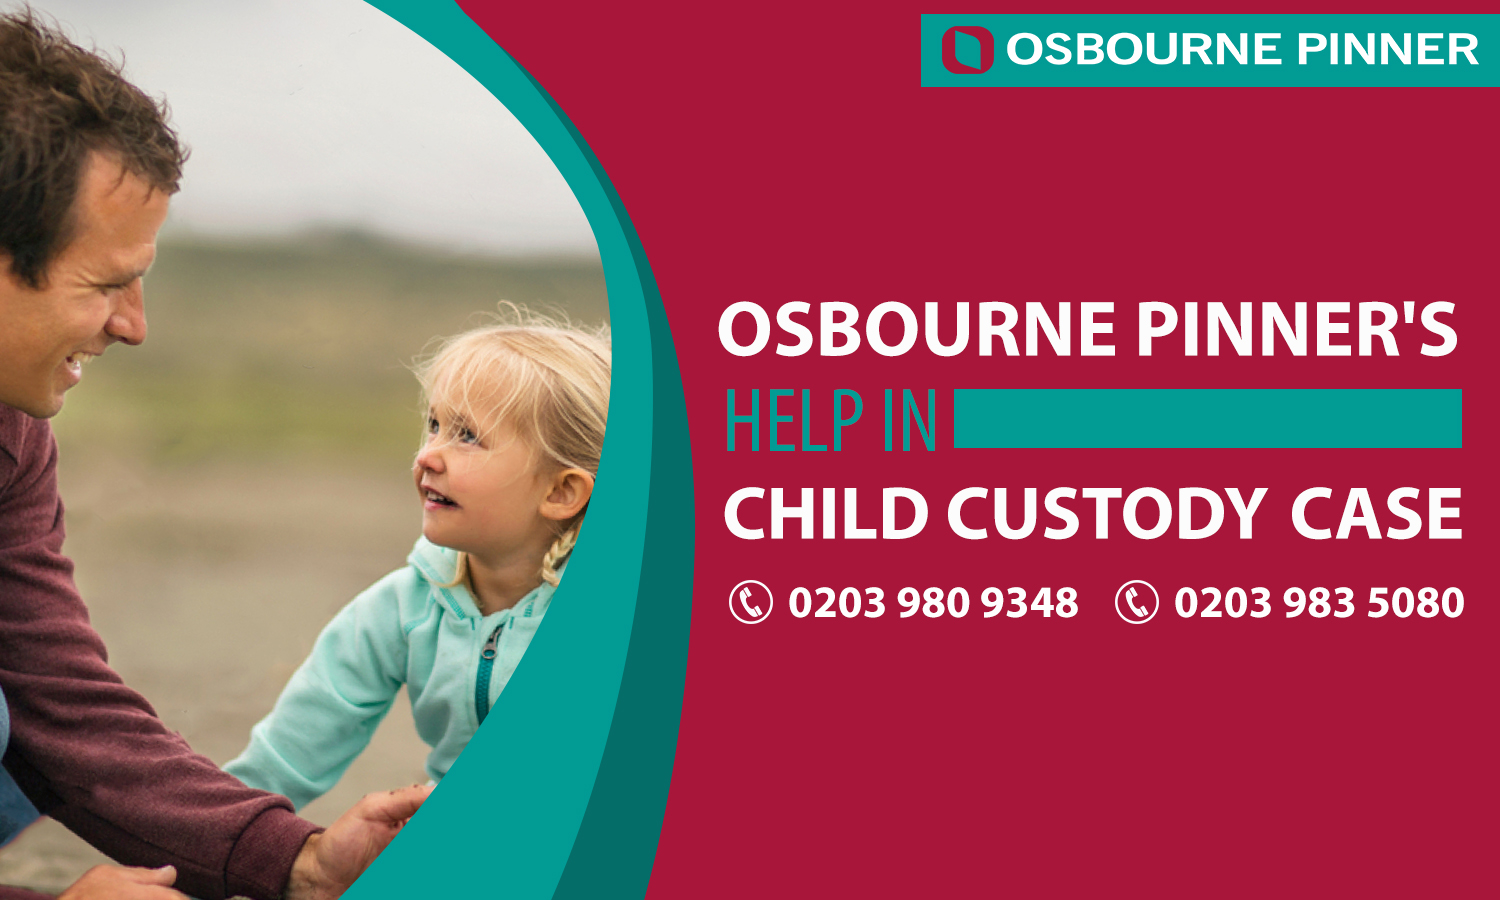 Osbourne Pinner Helps to Get Child Custody to Mother by Law